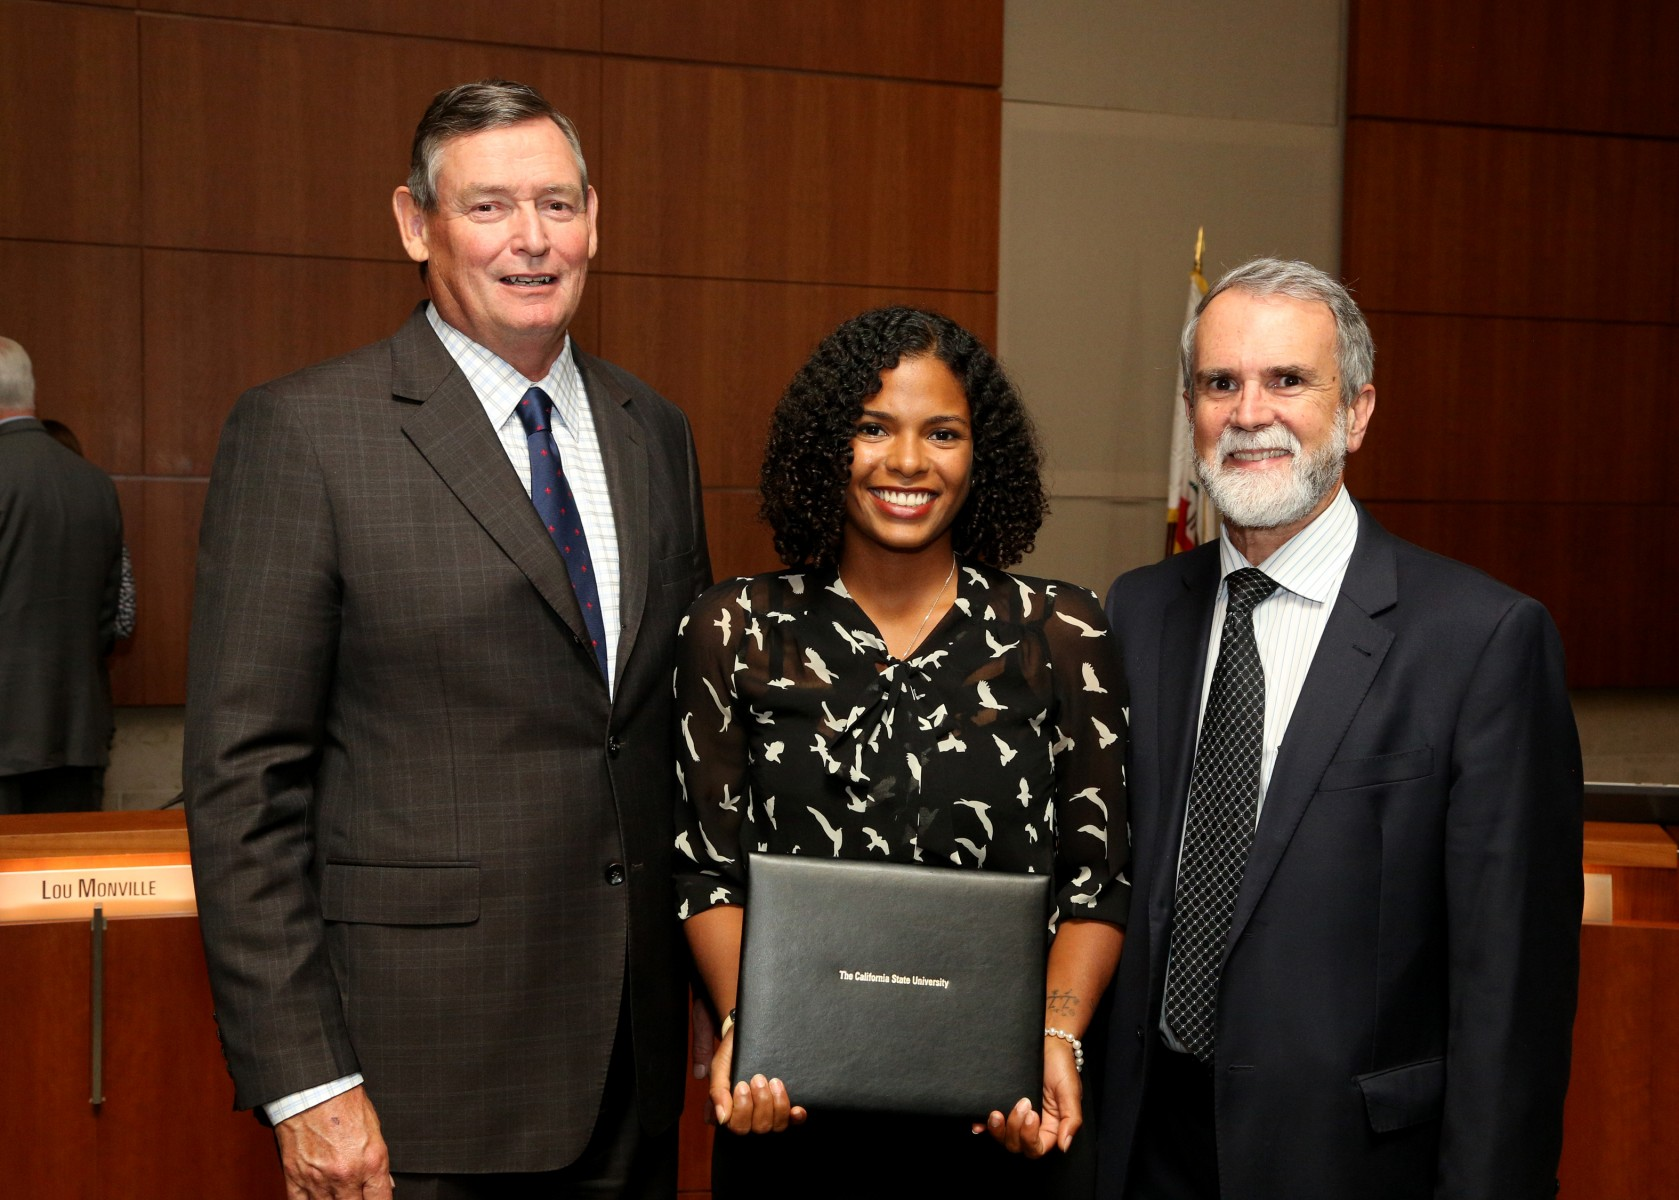 Maylin Caldwell with CSU Chancellor and CSUSM Provost